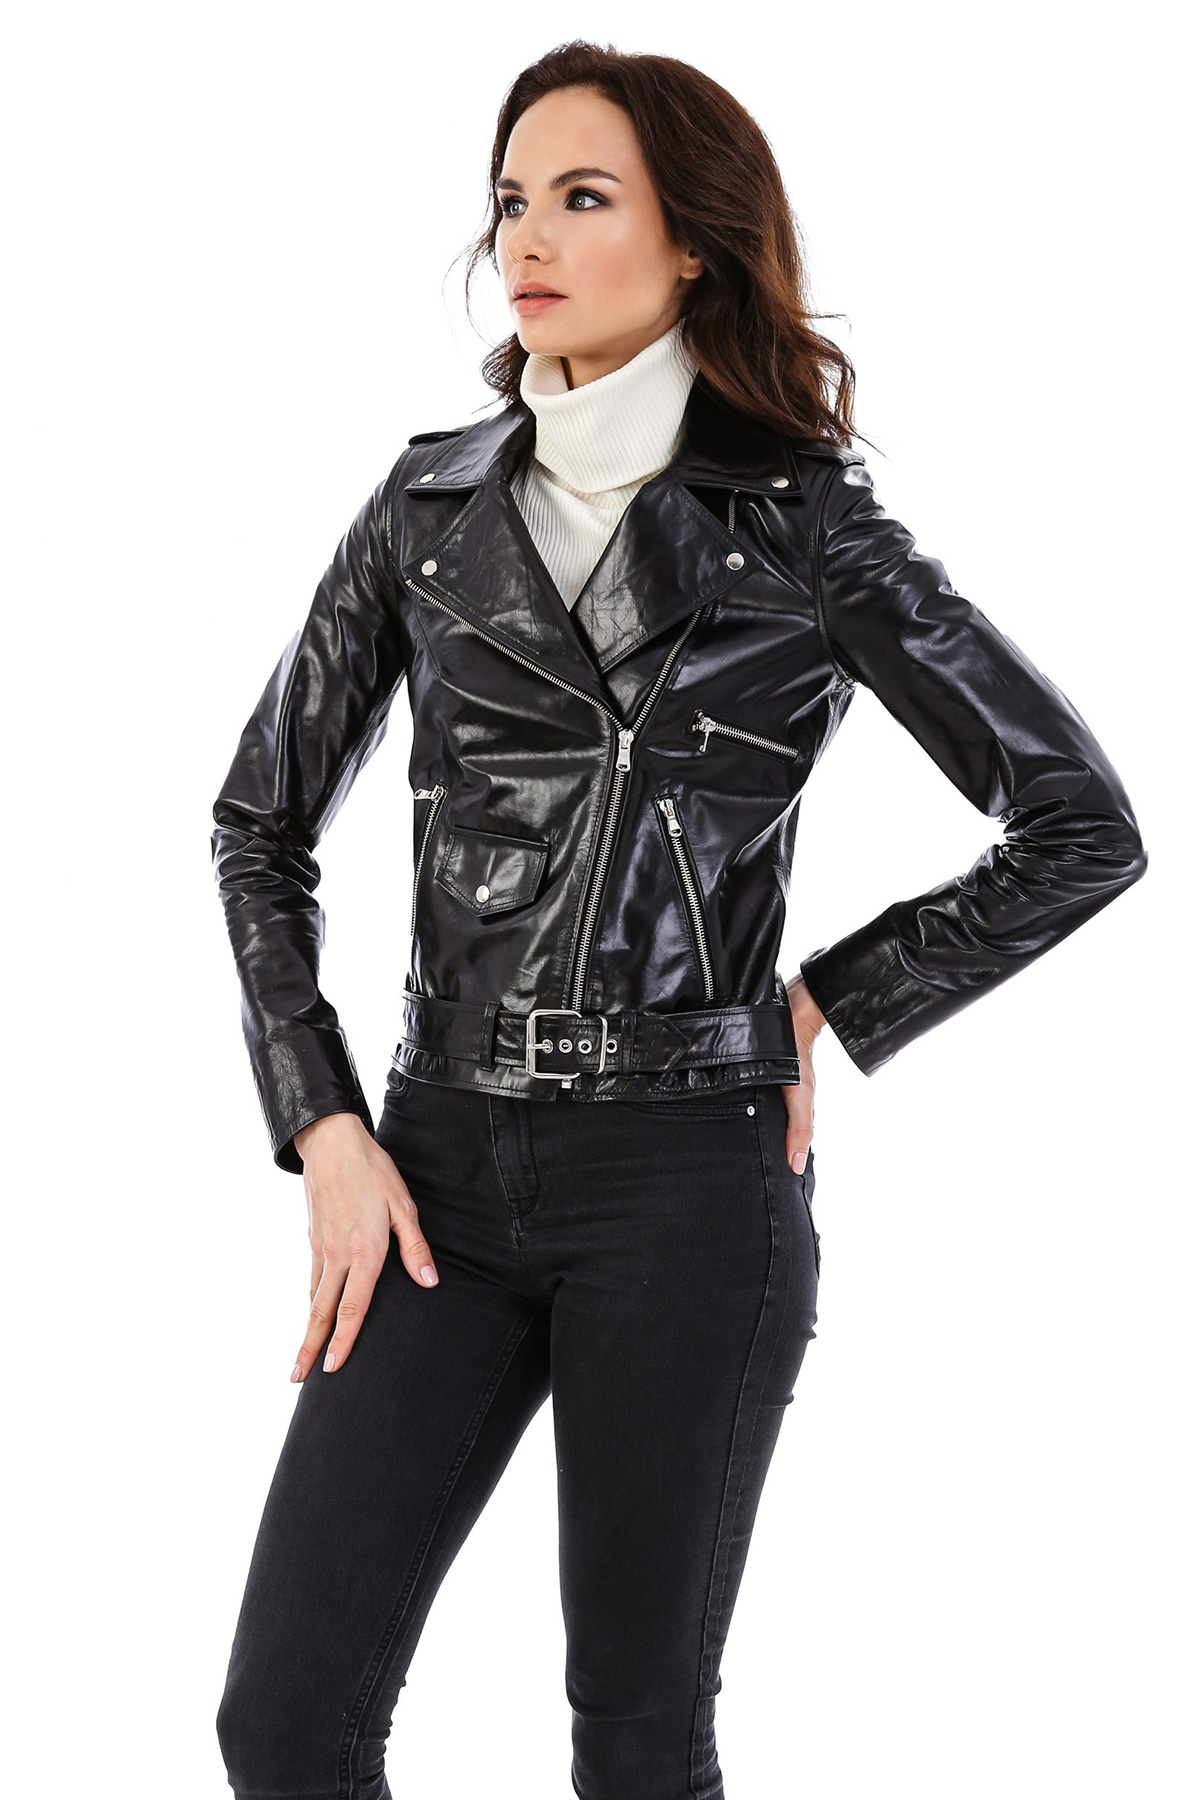 Best Value Leather Jackets